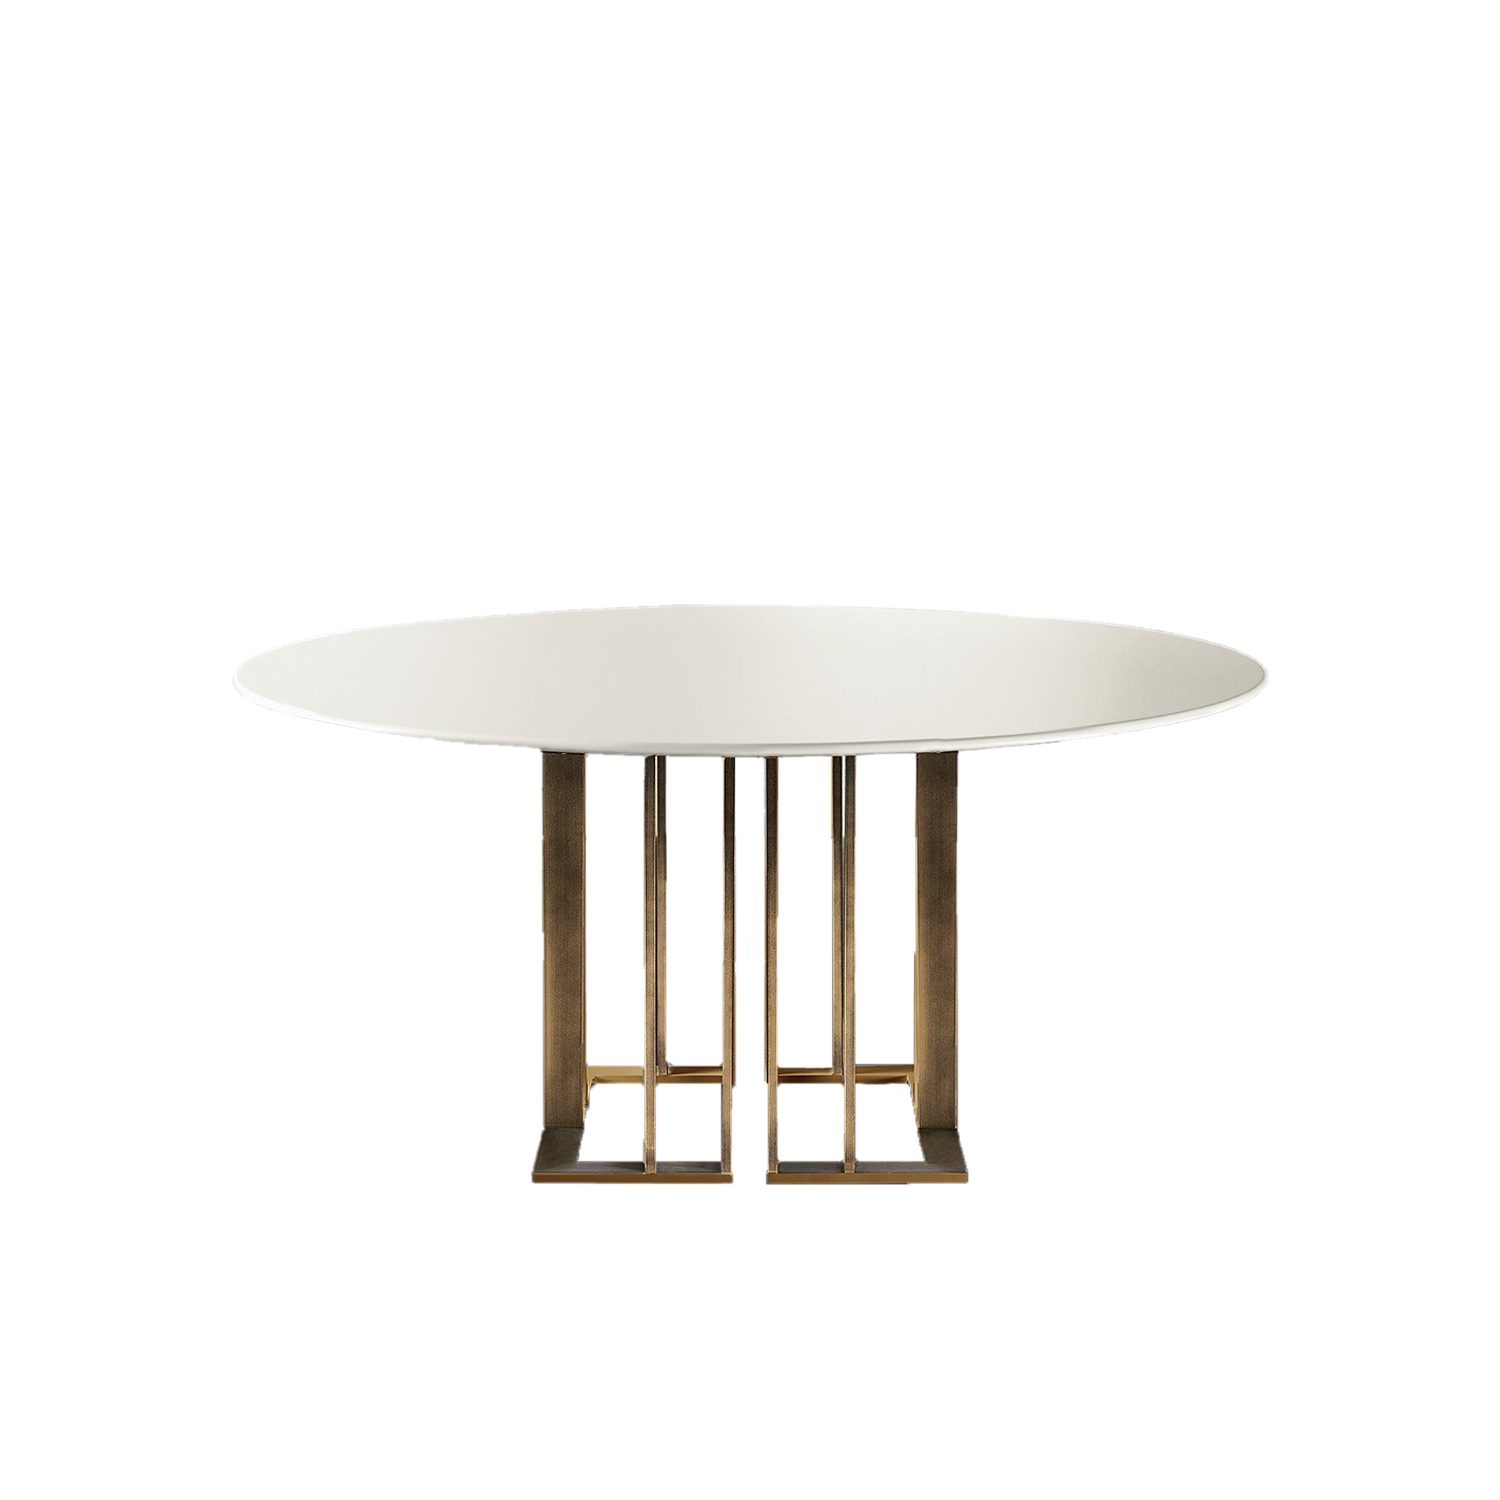 Charlie Round Table  - This collection includes tables of various sizes with square, round or rectangular tops.